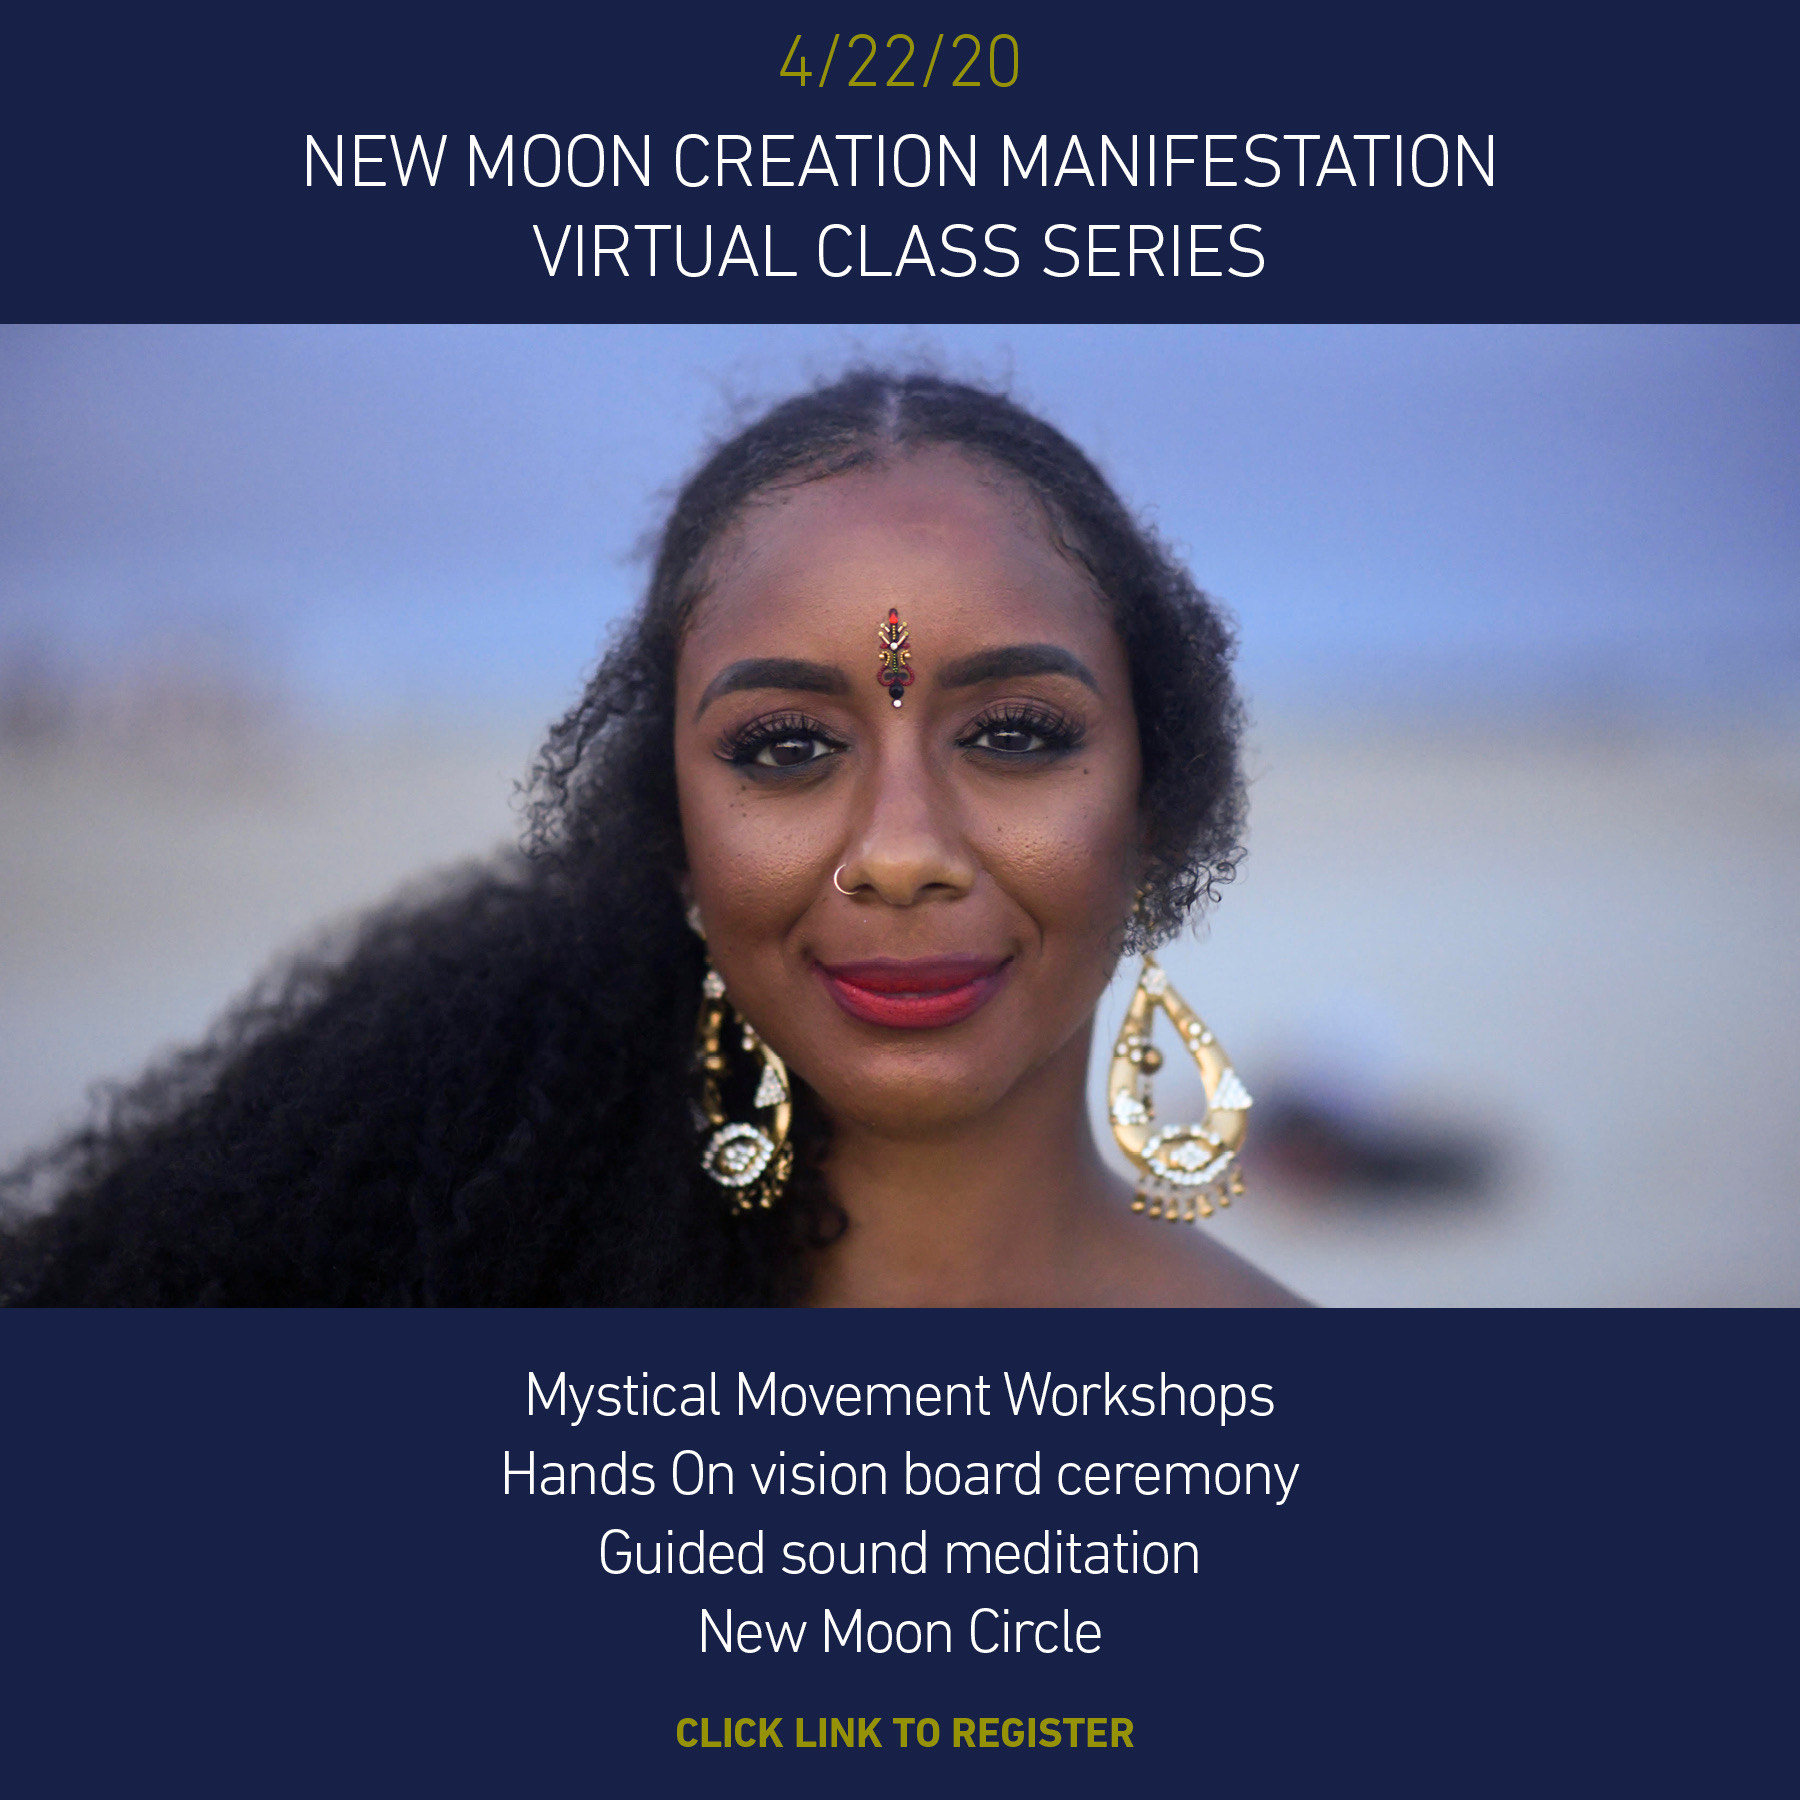 Creation Manifestation New Moon Experience 4/22/2020